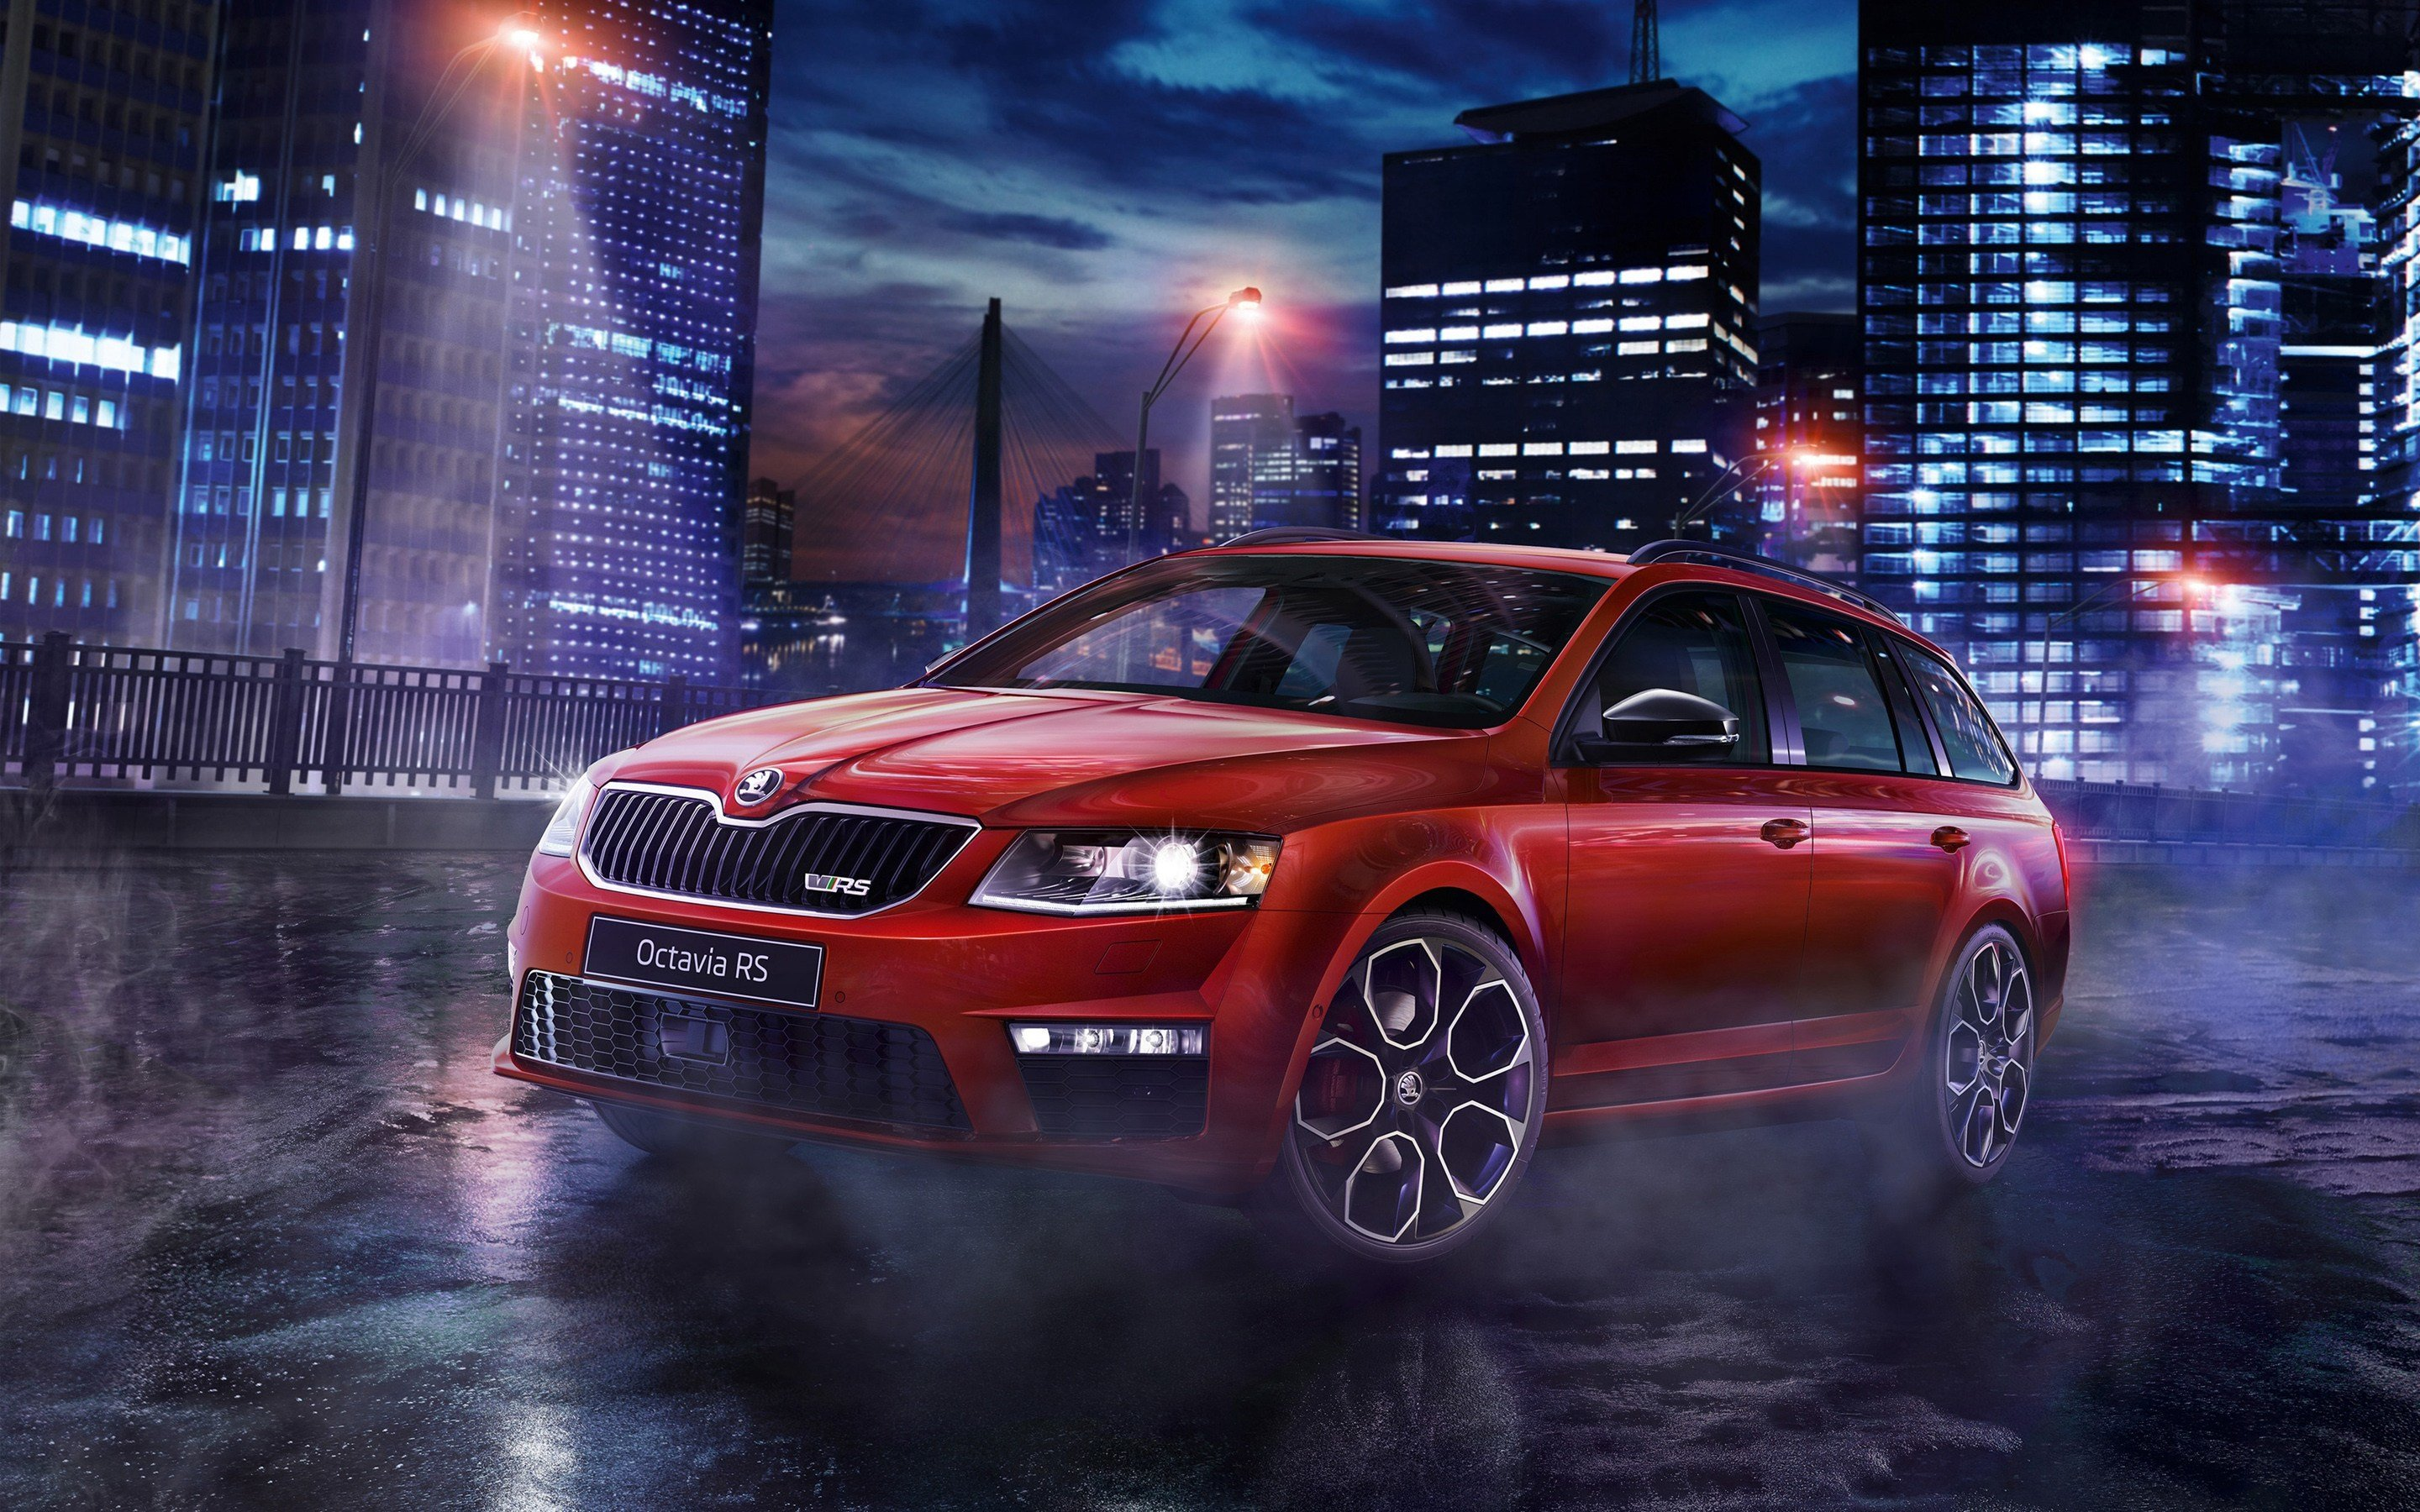 New 2015 Skoda Octavia Rs 230 Wallpaper Hd Car Wallpapers On This Month